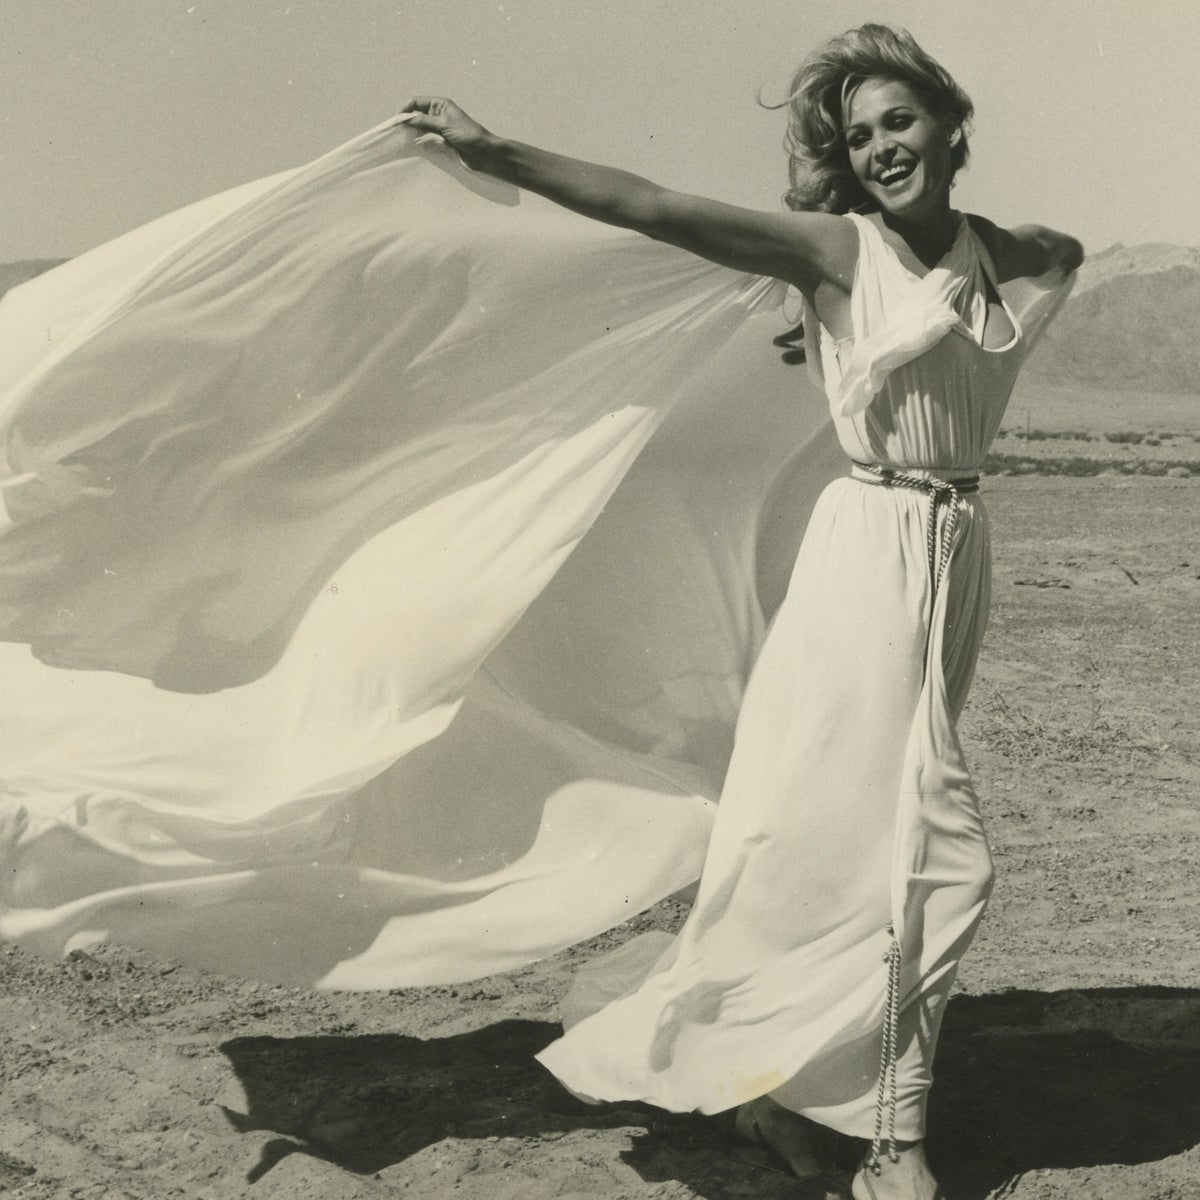 Swiss movie star and model Ursula Andress on a visit to Israel.